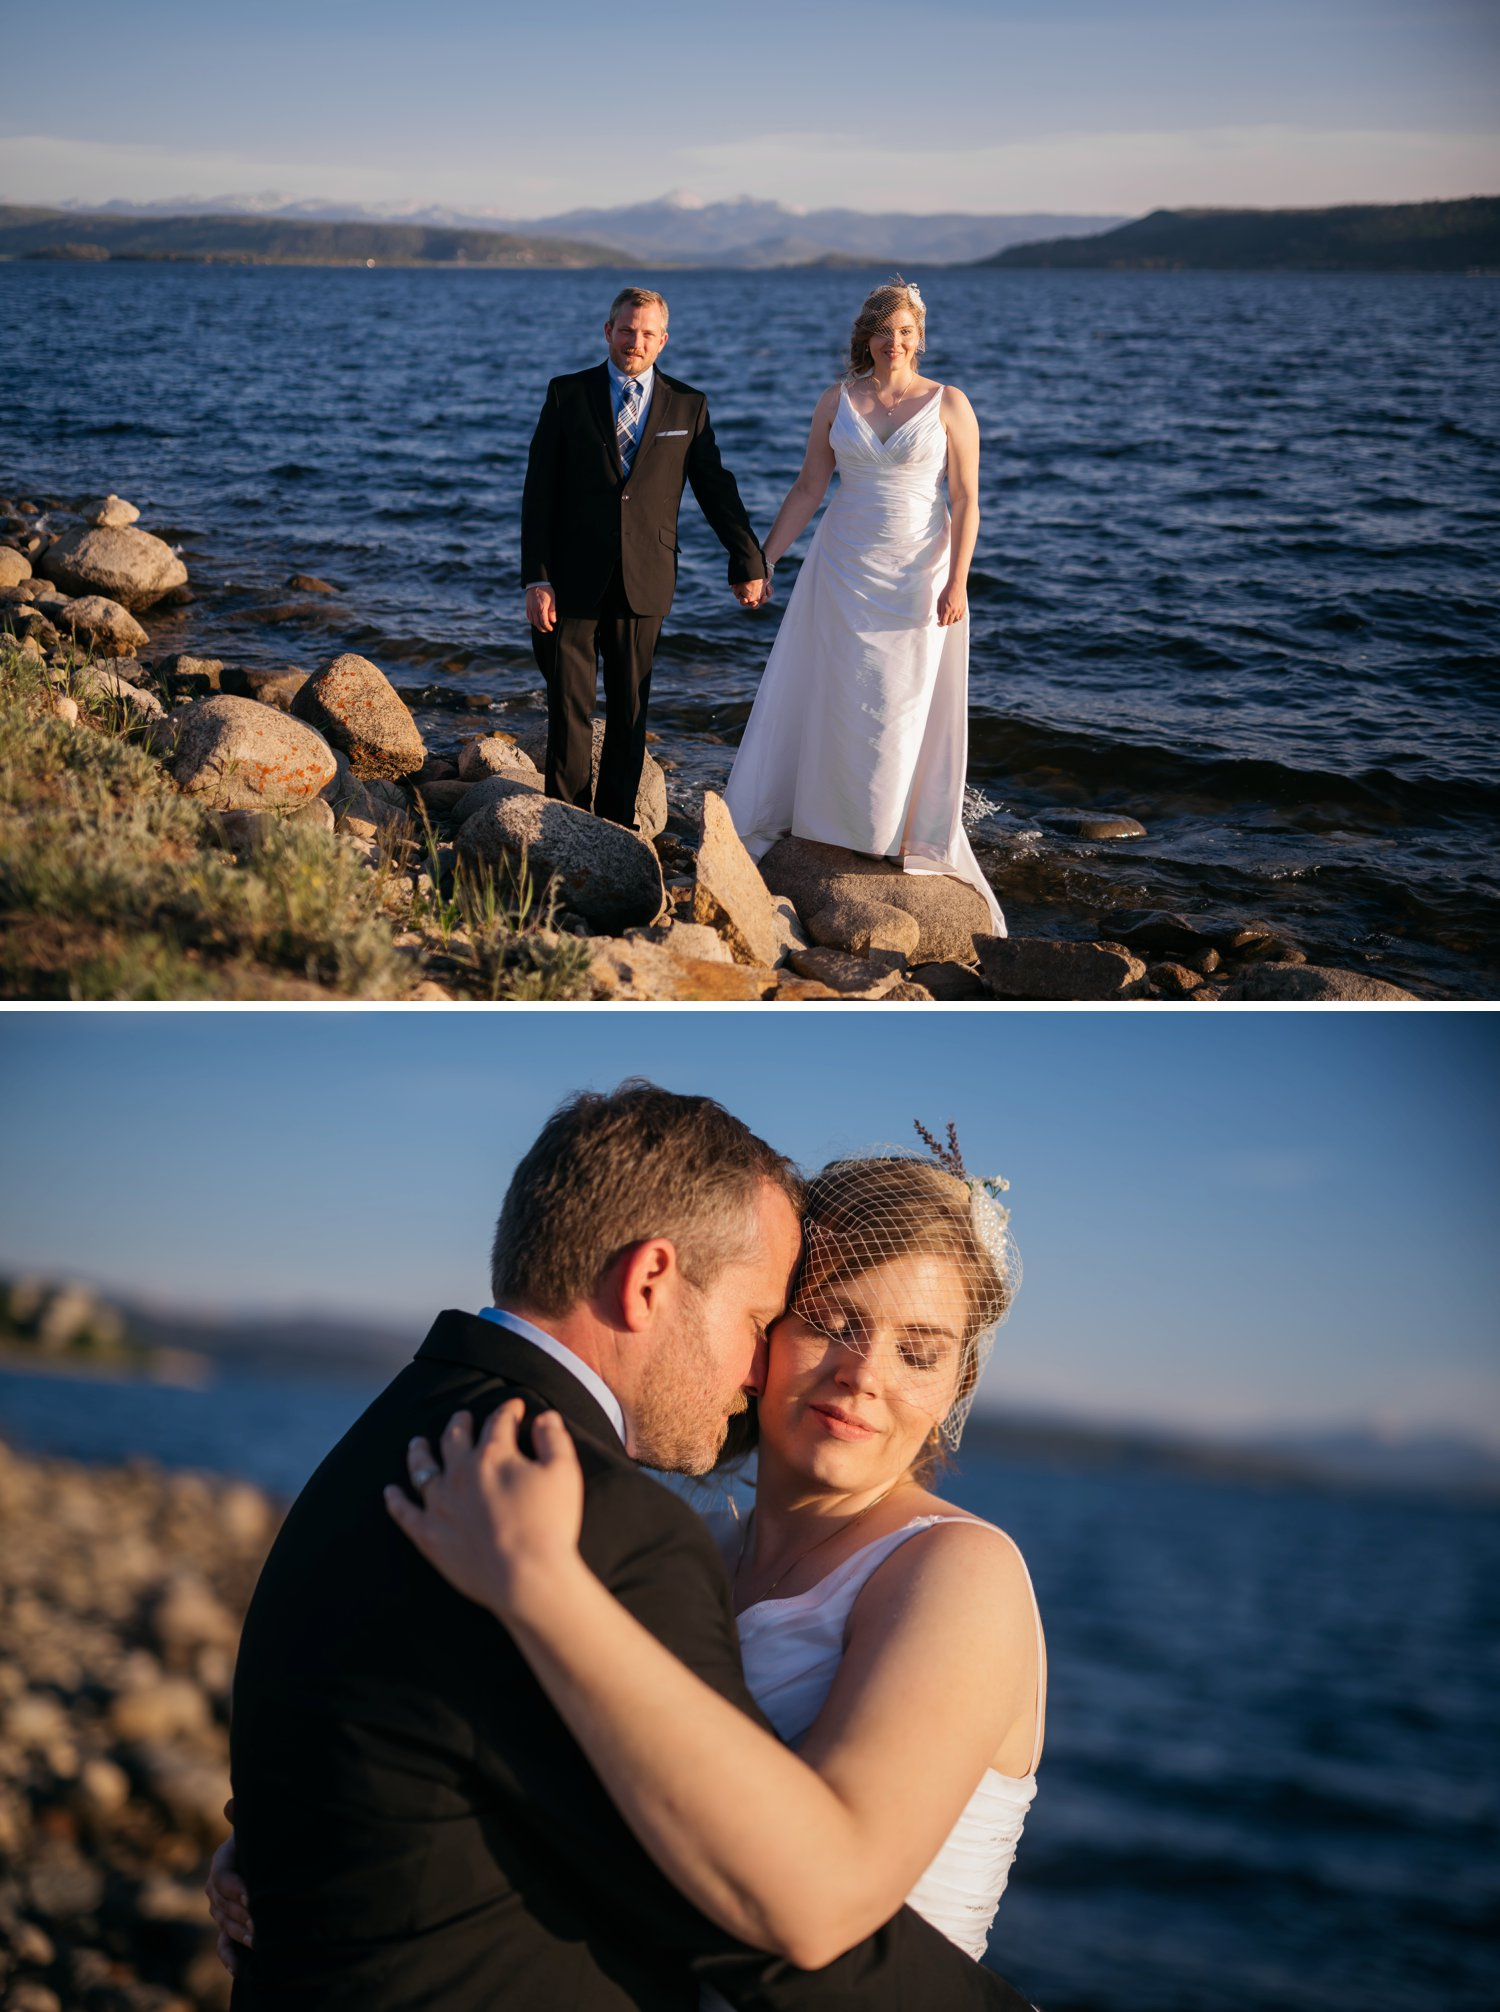 Bride and Groom photos at Grand Lake, Granby Colorado. Photo by Maddie Mae Photography